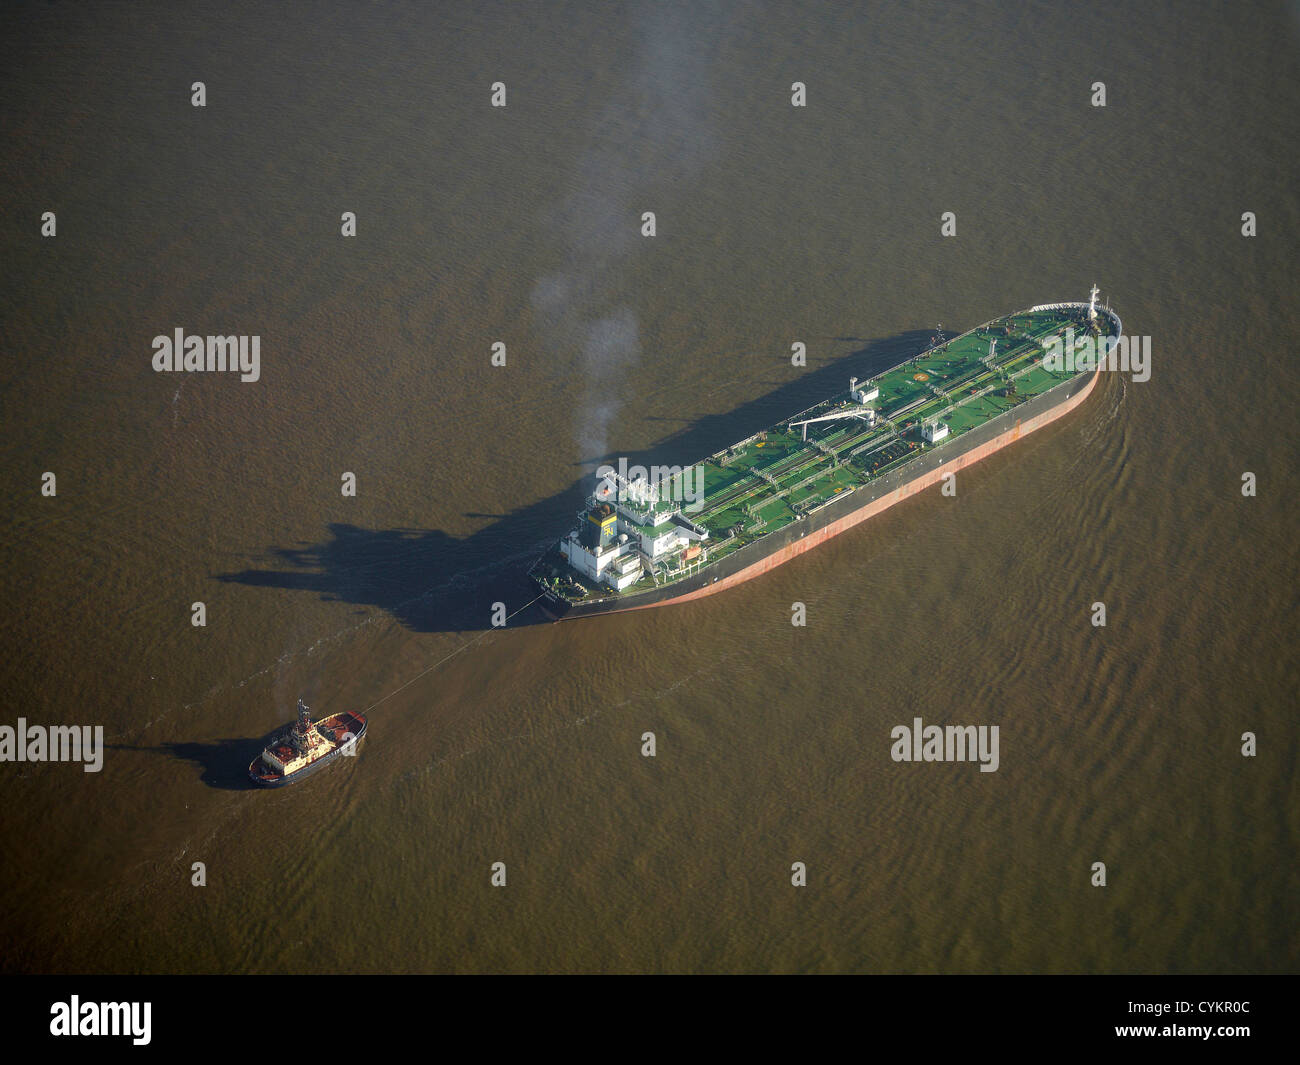 Ship entering Liverpool Docks at the mouth of the River Mersey, North West England, UK - Stock Image